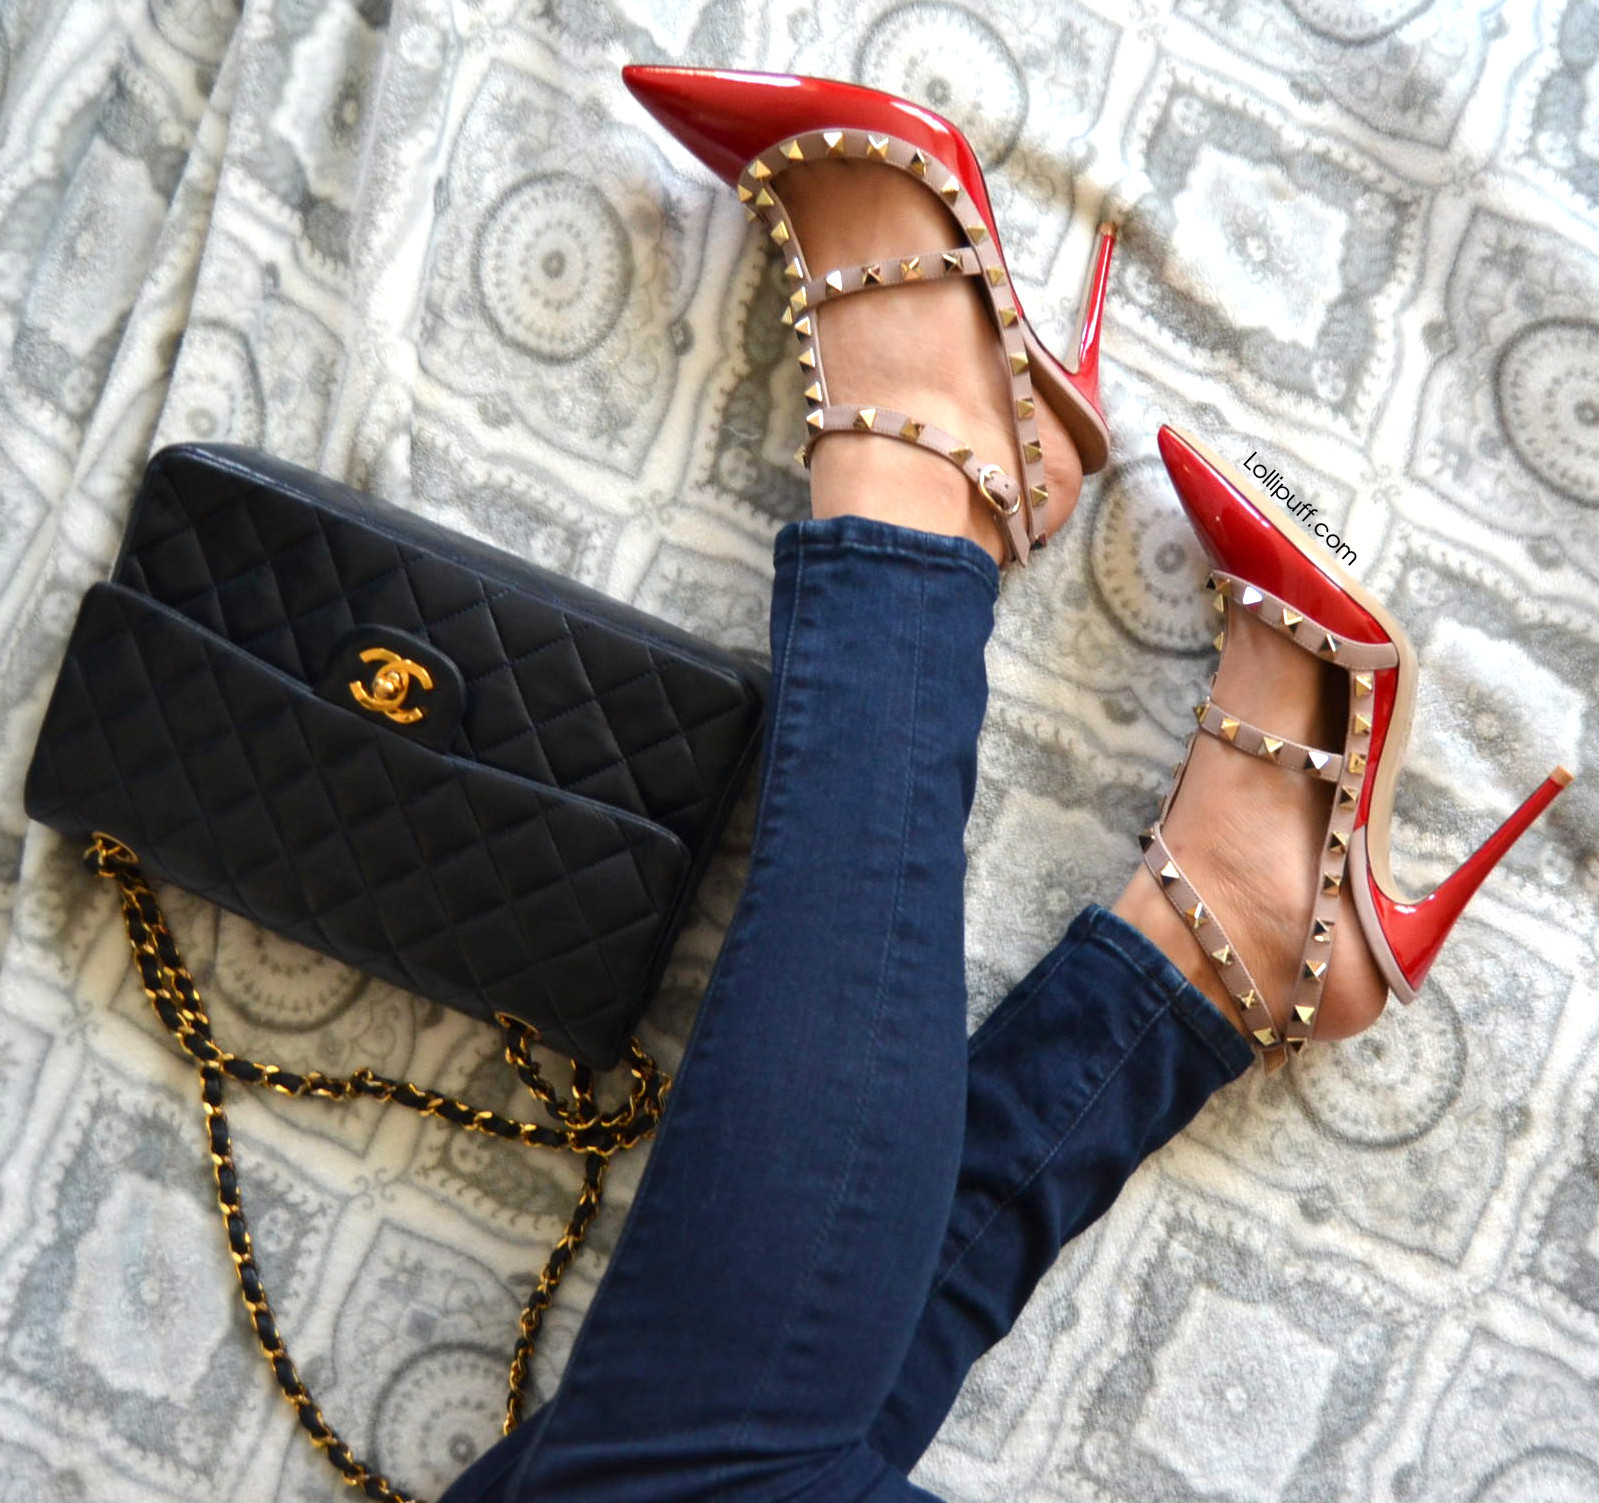 Skinny jeans chanel bag wearing valentino studded stud heels sandals